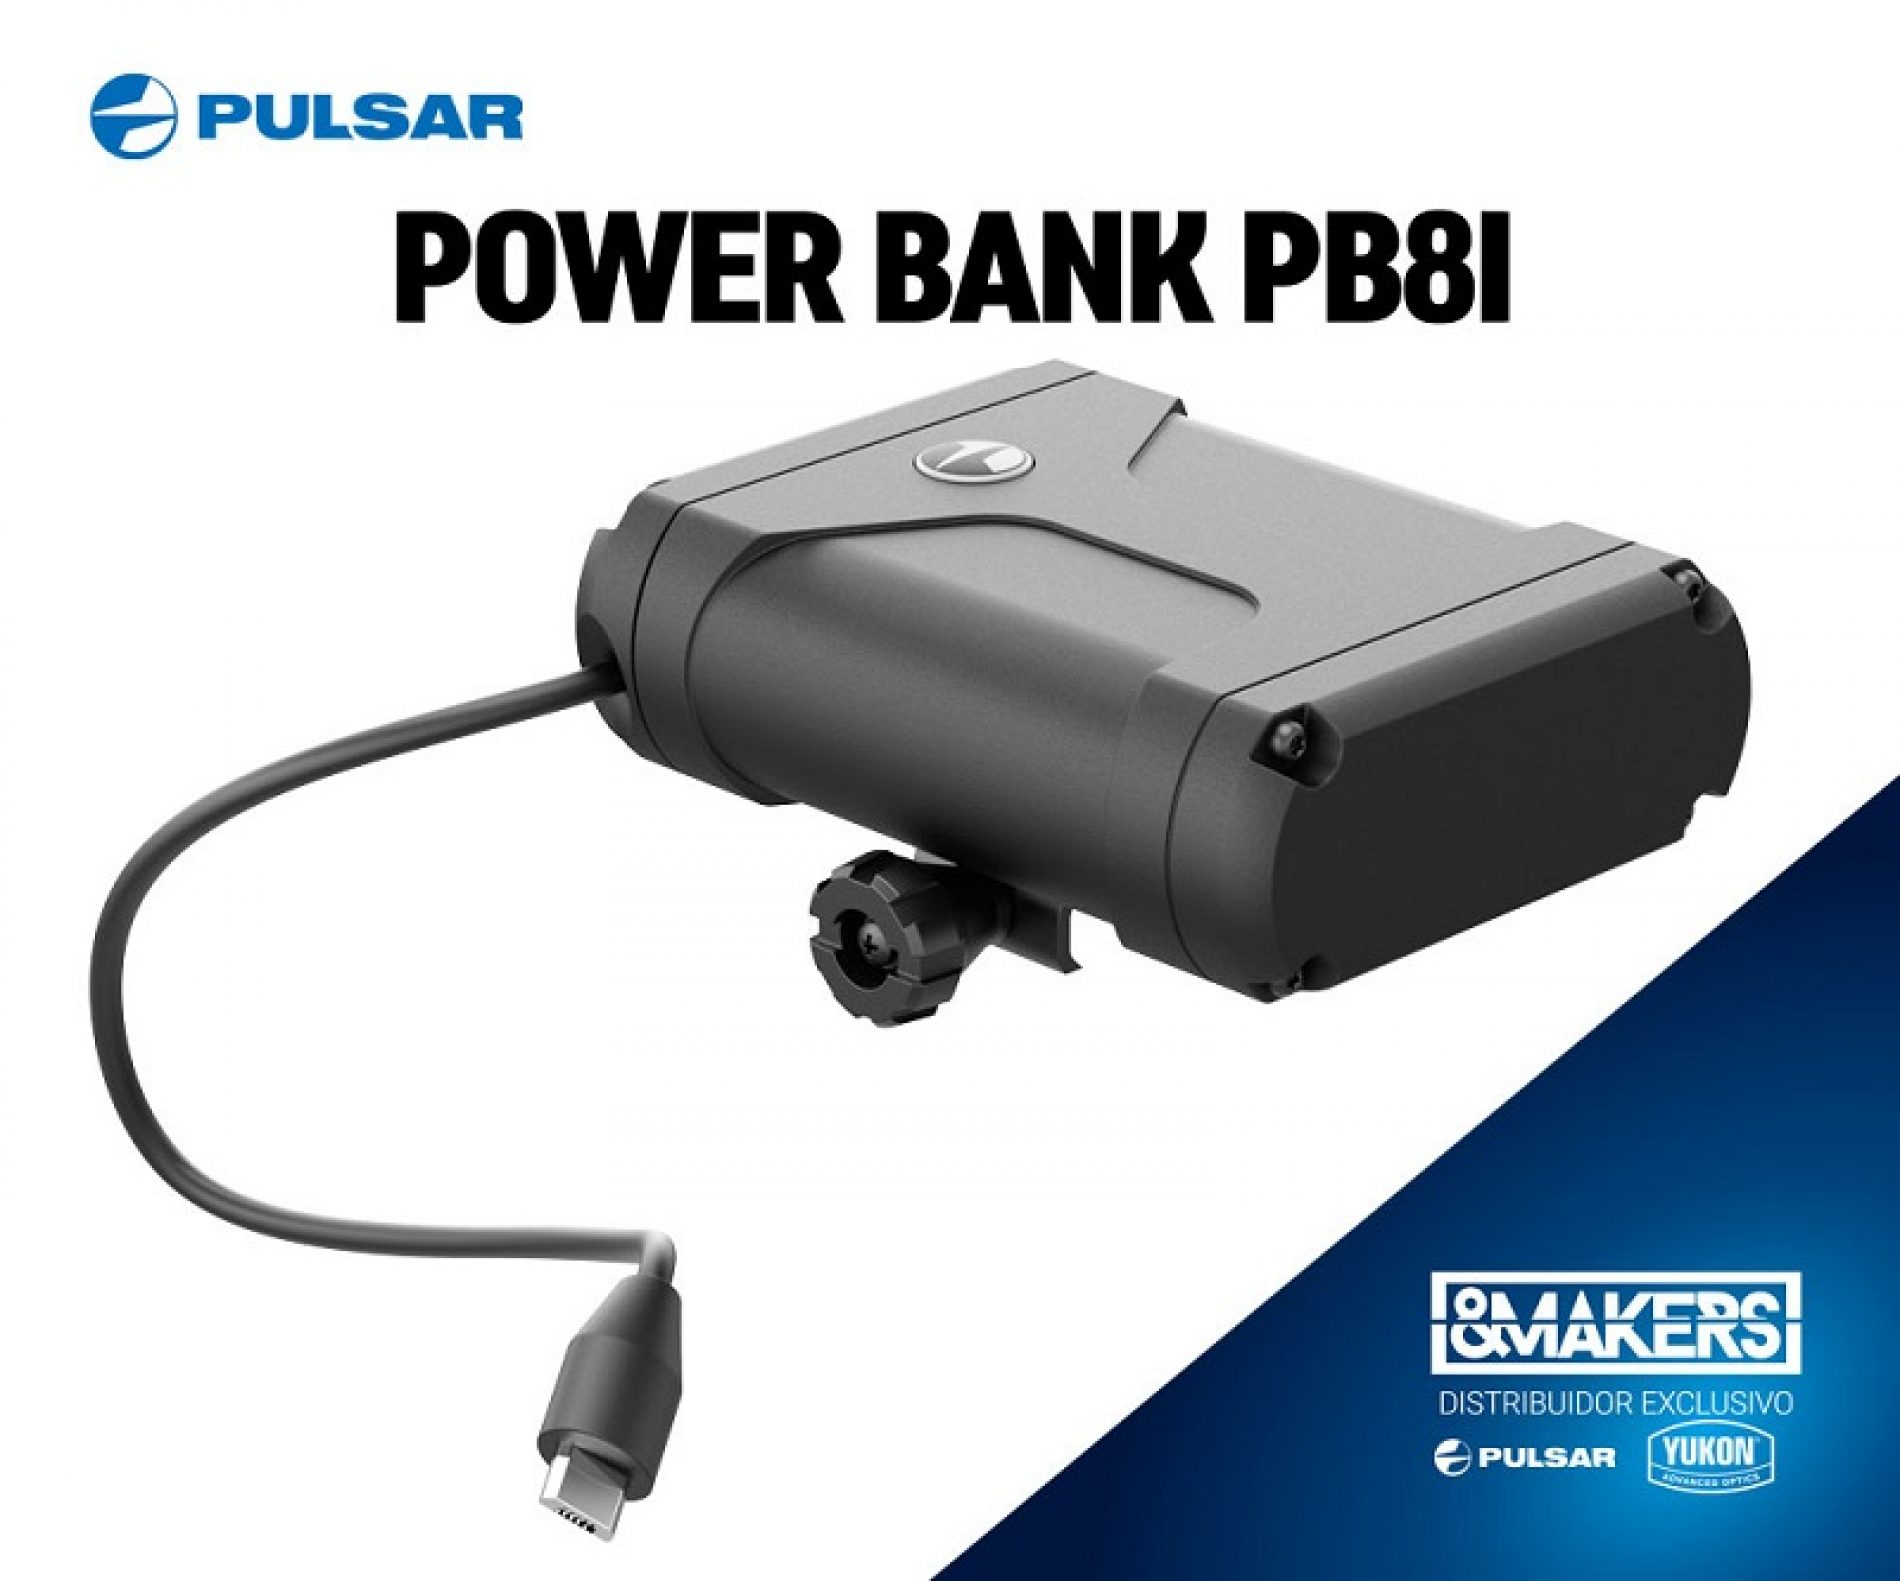 Alarga la batería de su dispositivo Pulsar con la Power bank PB8i